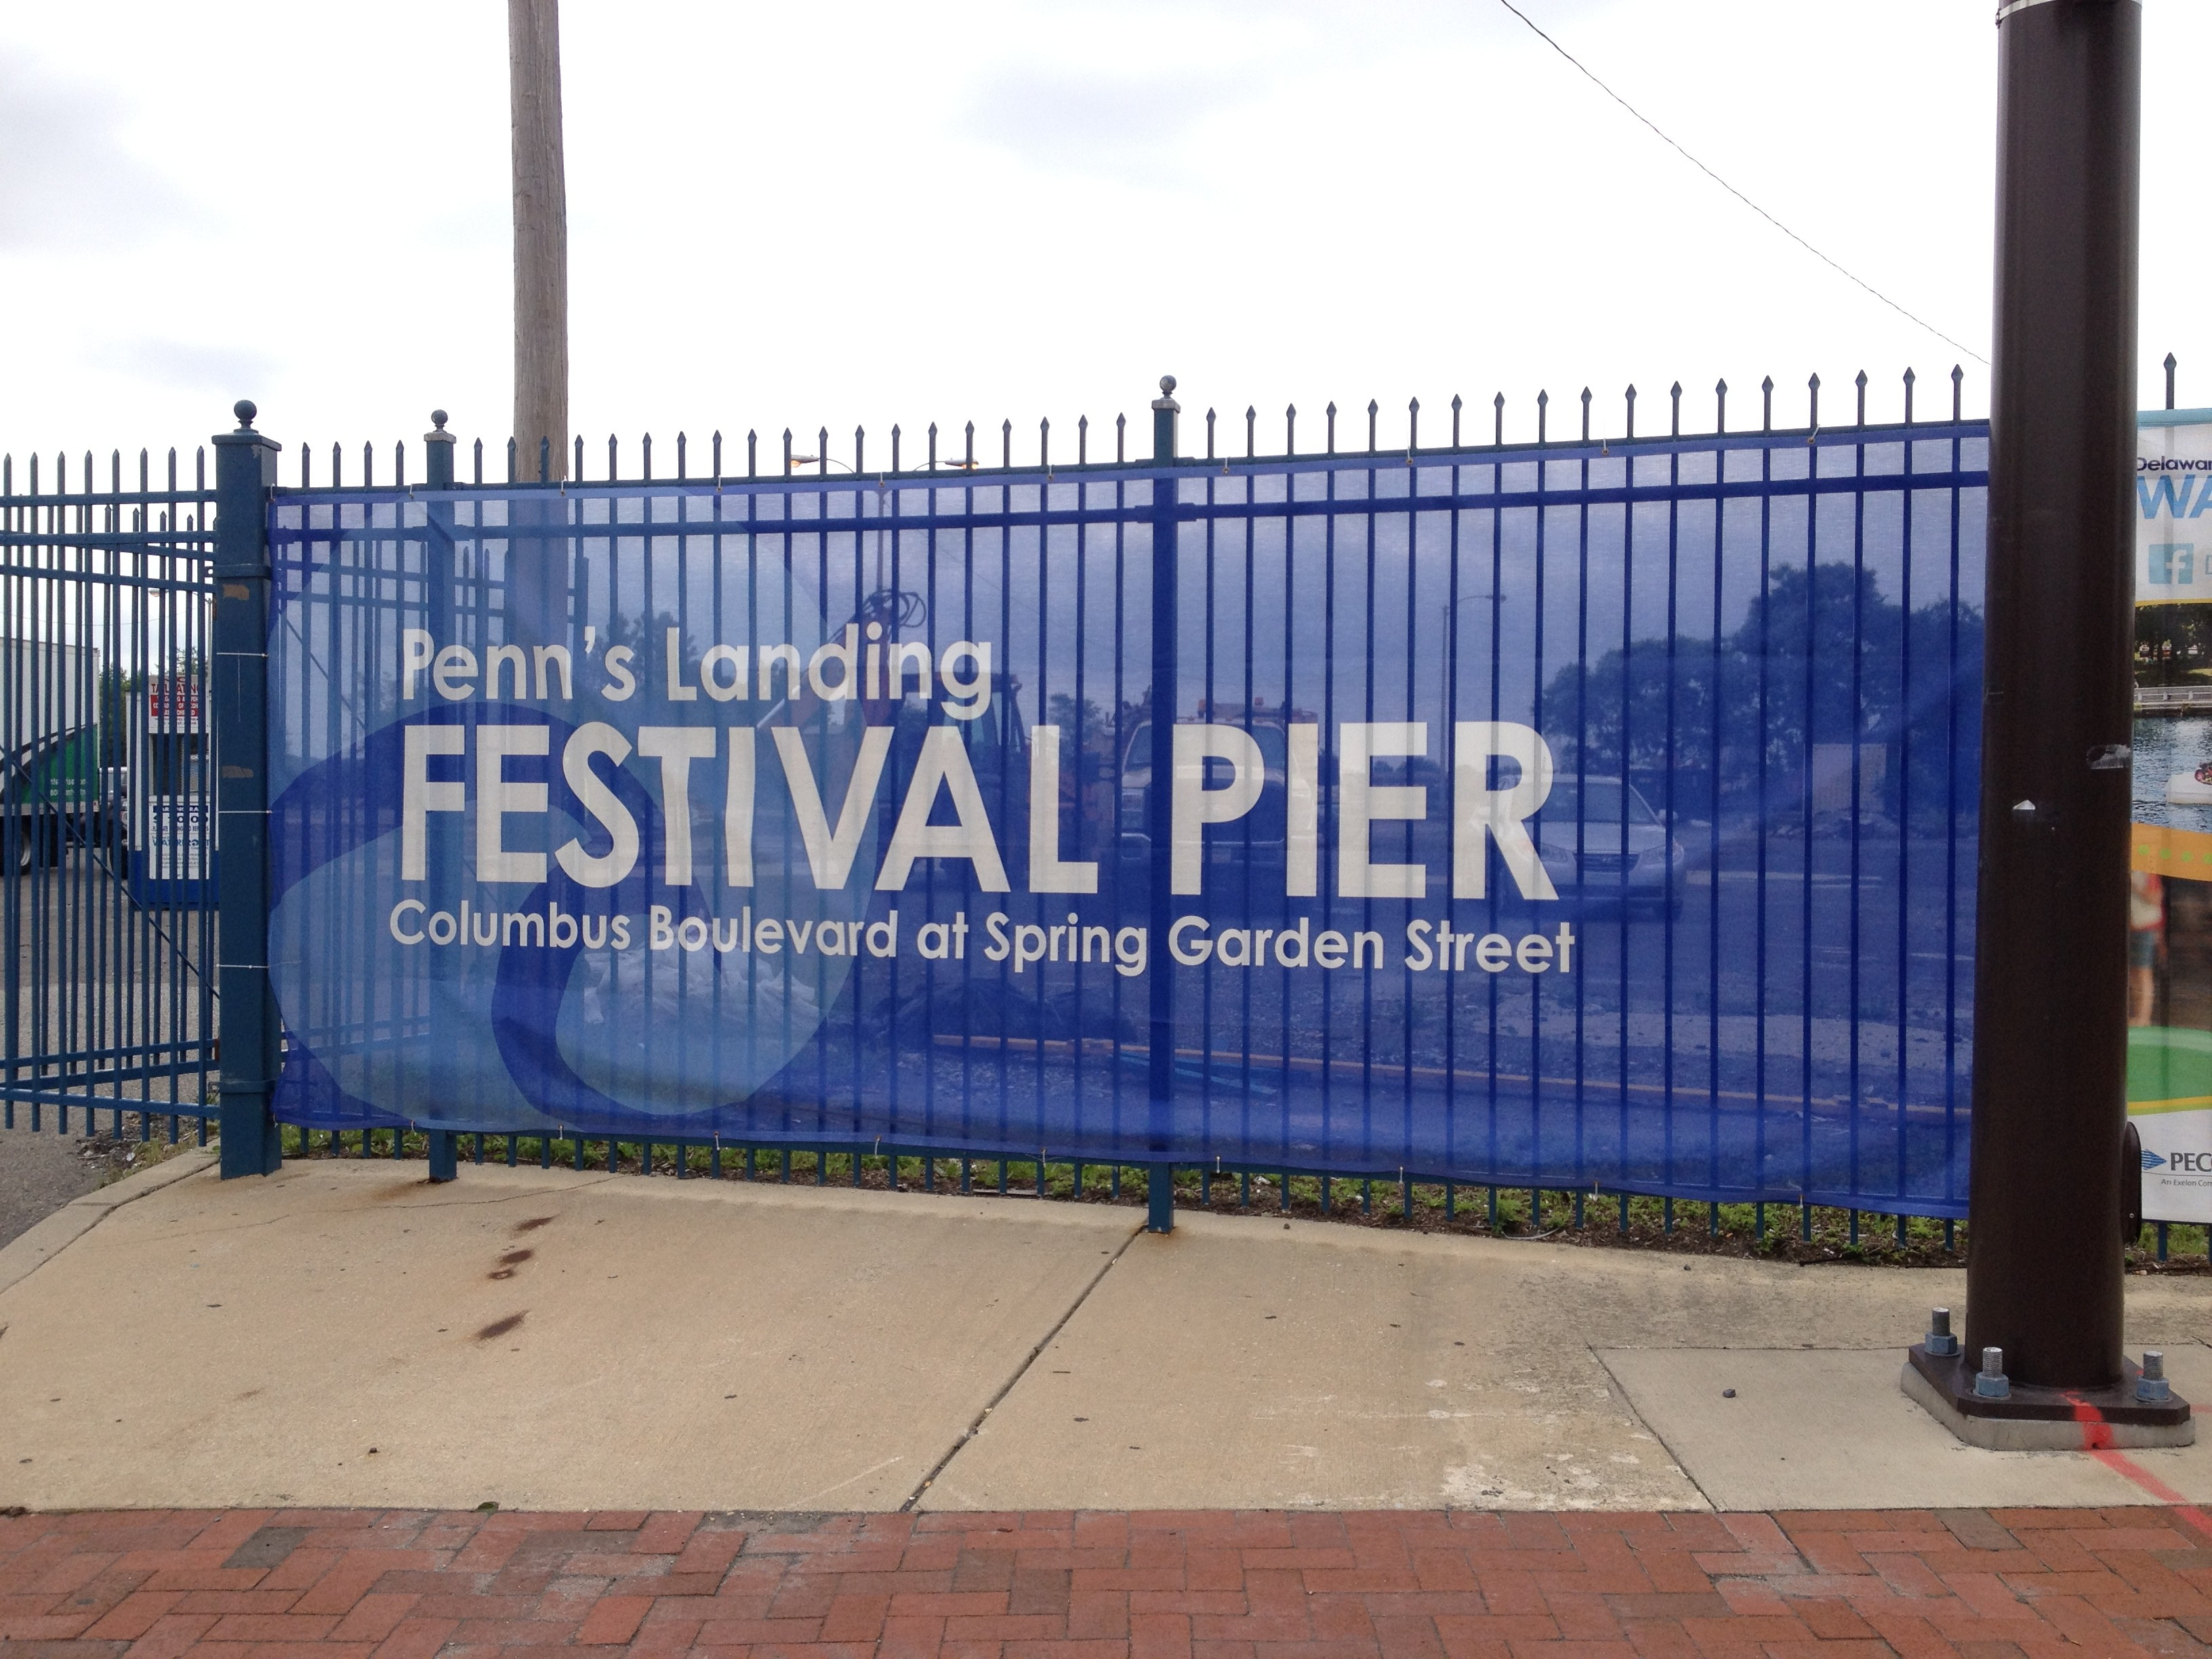 Festival Pier will host a series of Radio 104.5 concerts starting this summer.